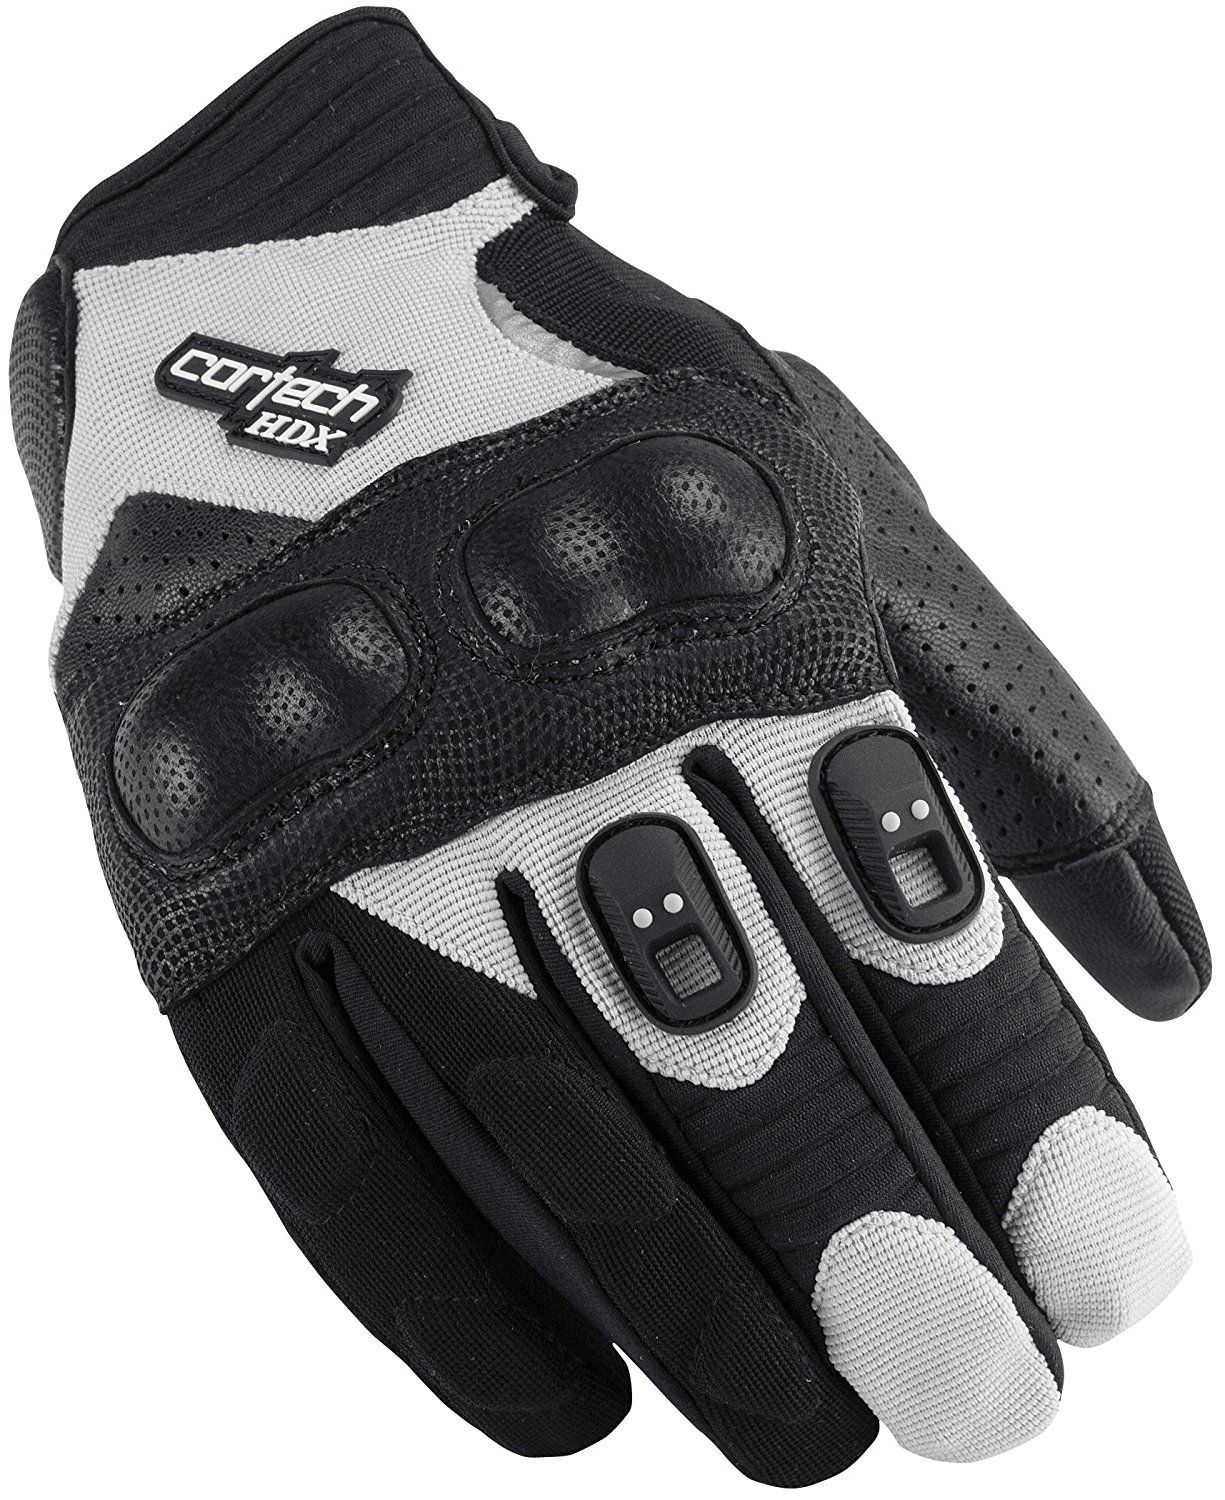 Cortech hdx 2 womens textile street motorcycle gloves